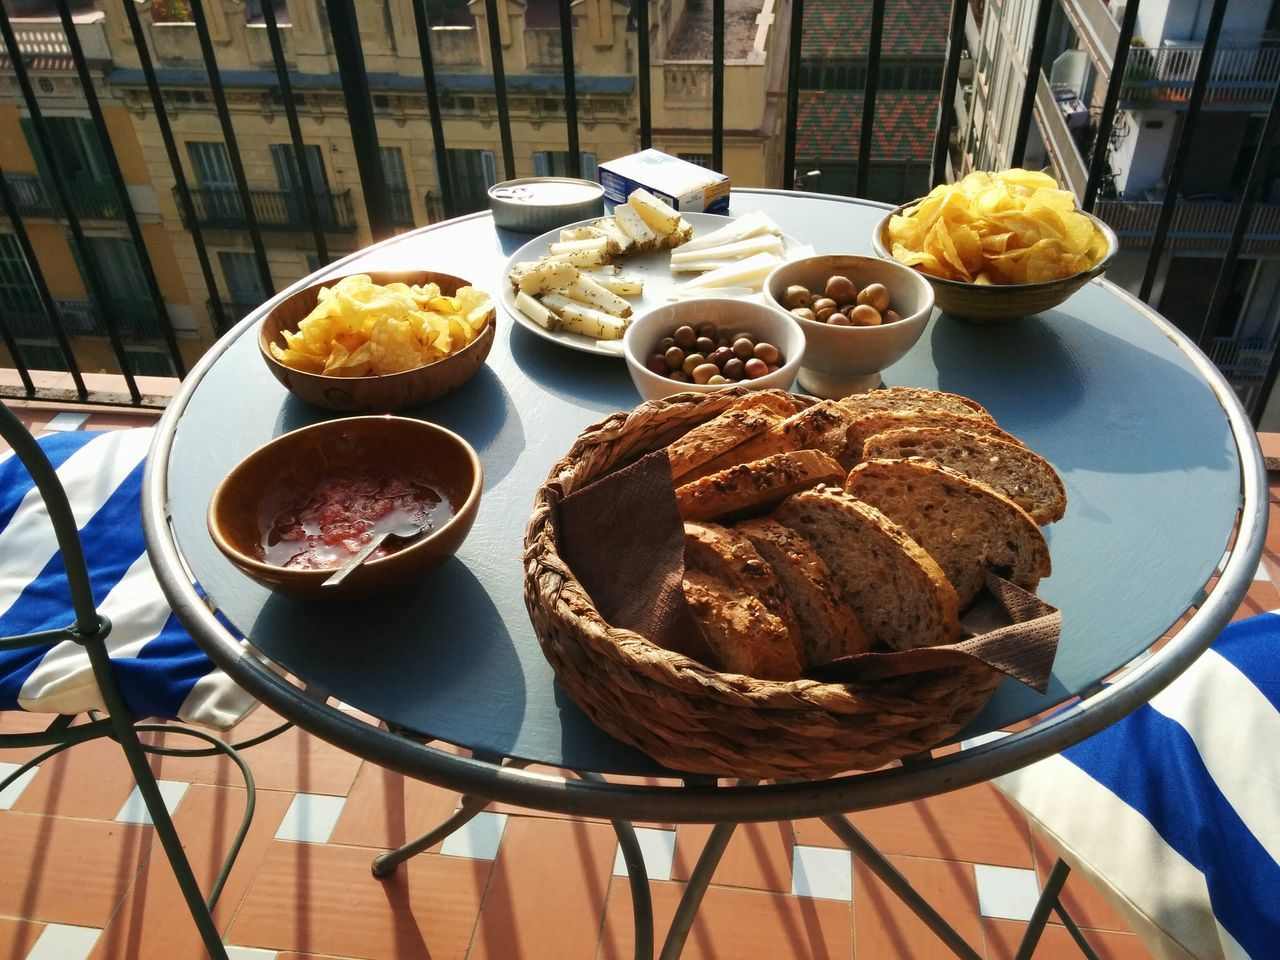 Sunny Day Outdoors Terrace Rooftop Food Aperitivo Time Starters Vermouth Tapas Barcelona, Spain